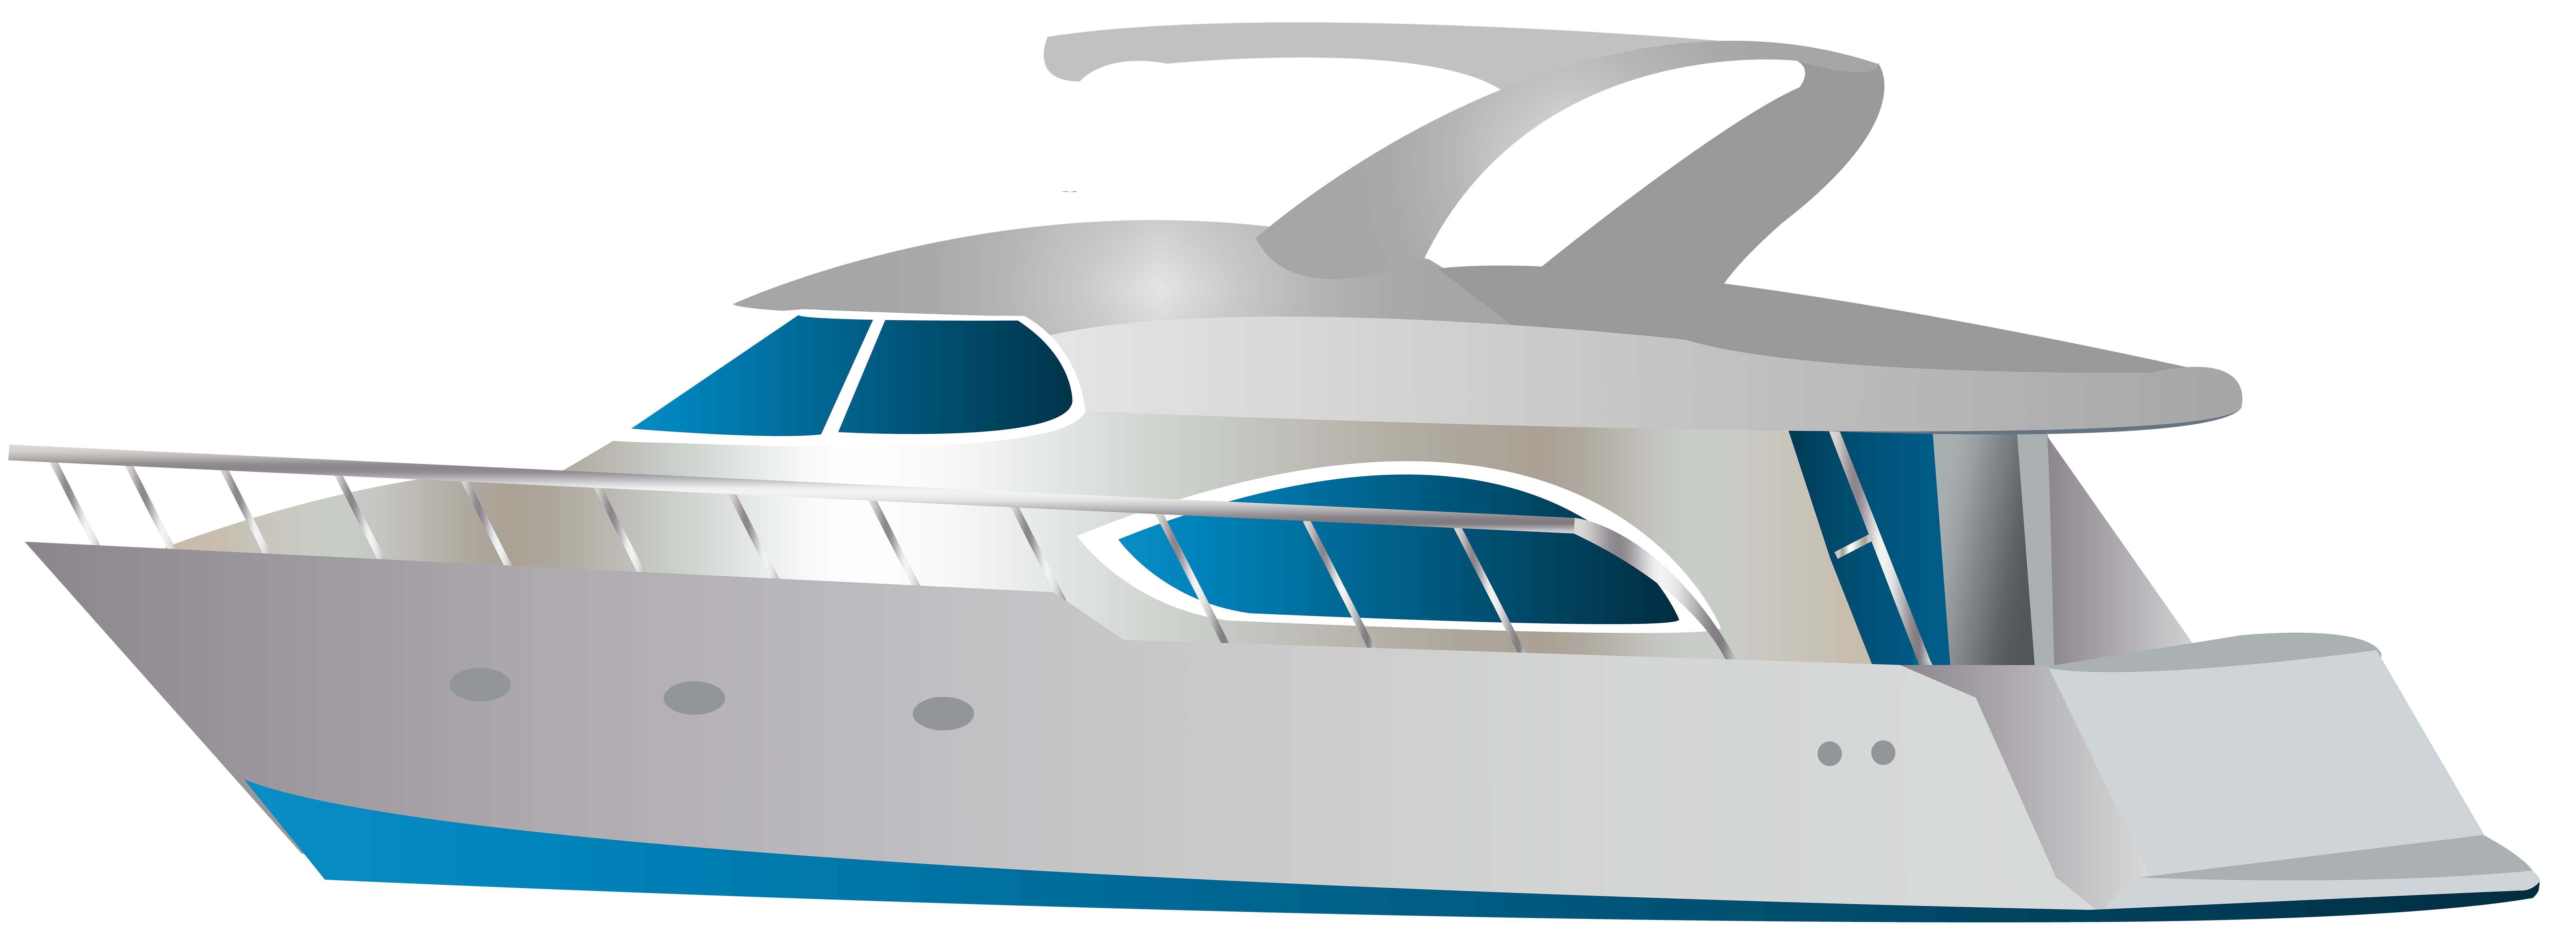 png royalty free Boat clipart speed boat. Transparent png clip art